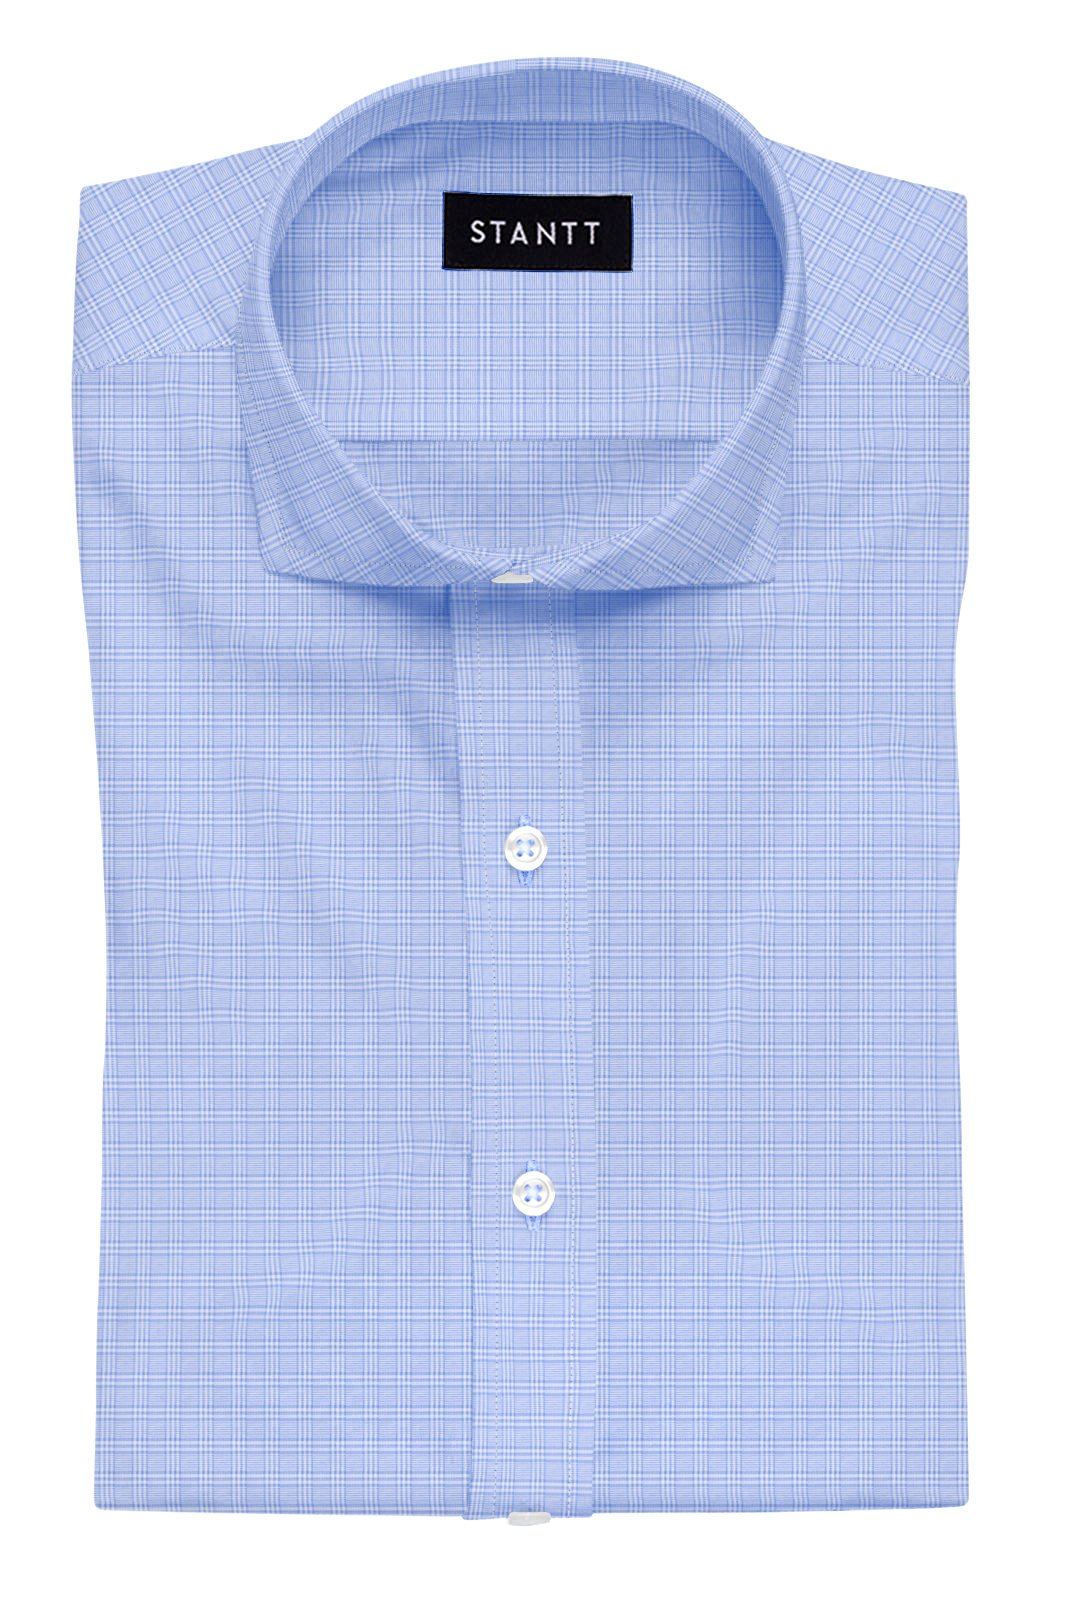 Light Blue Mini Raker Check: Cutaway Collar, Barrel Cuff